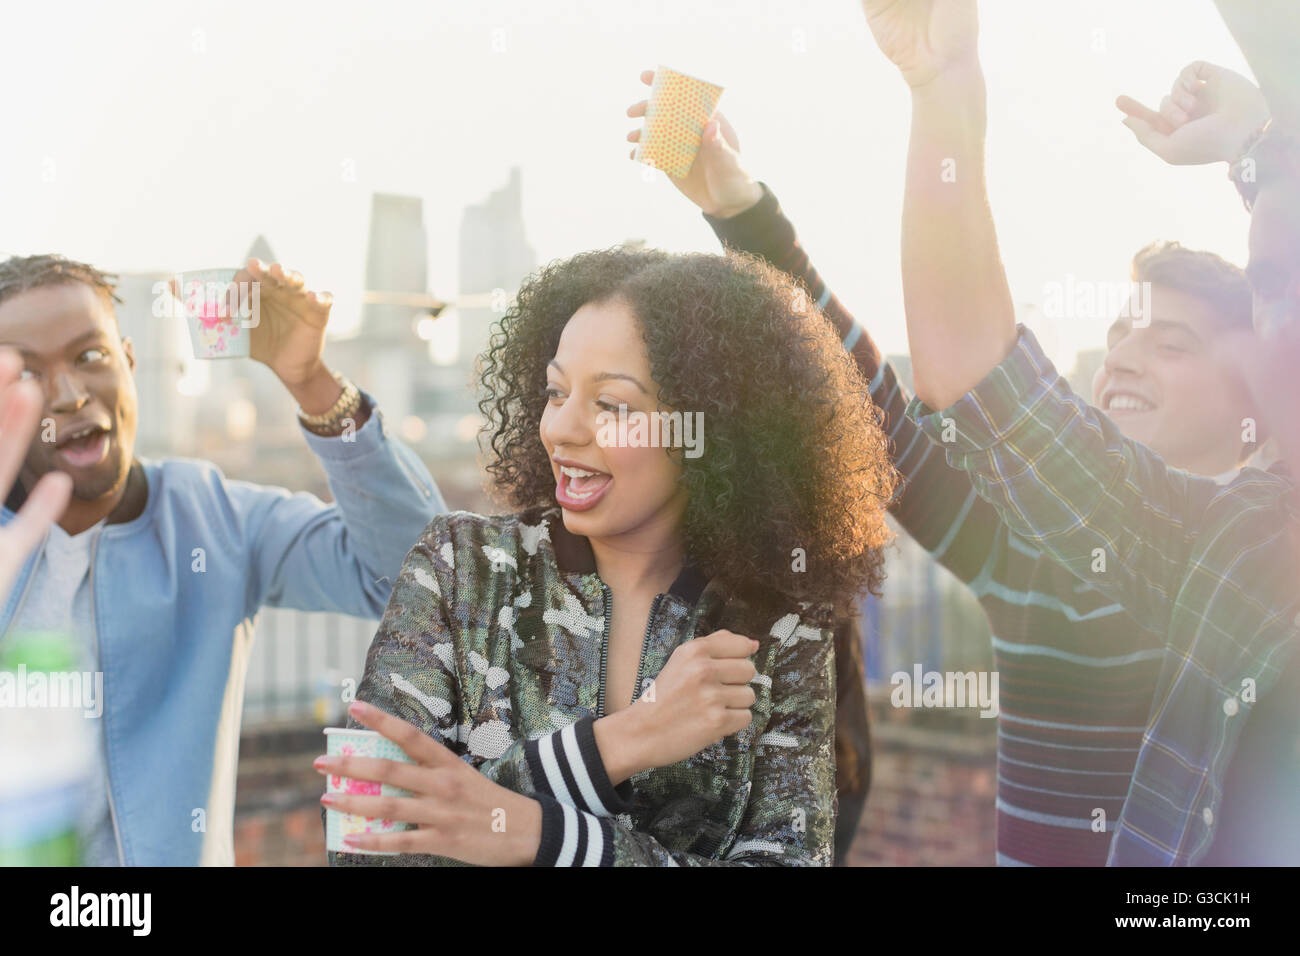 Young woman dancing and drinking at rooftop party - Stock Image